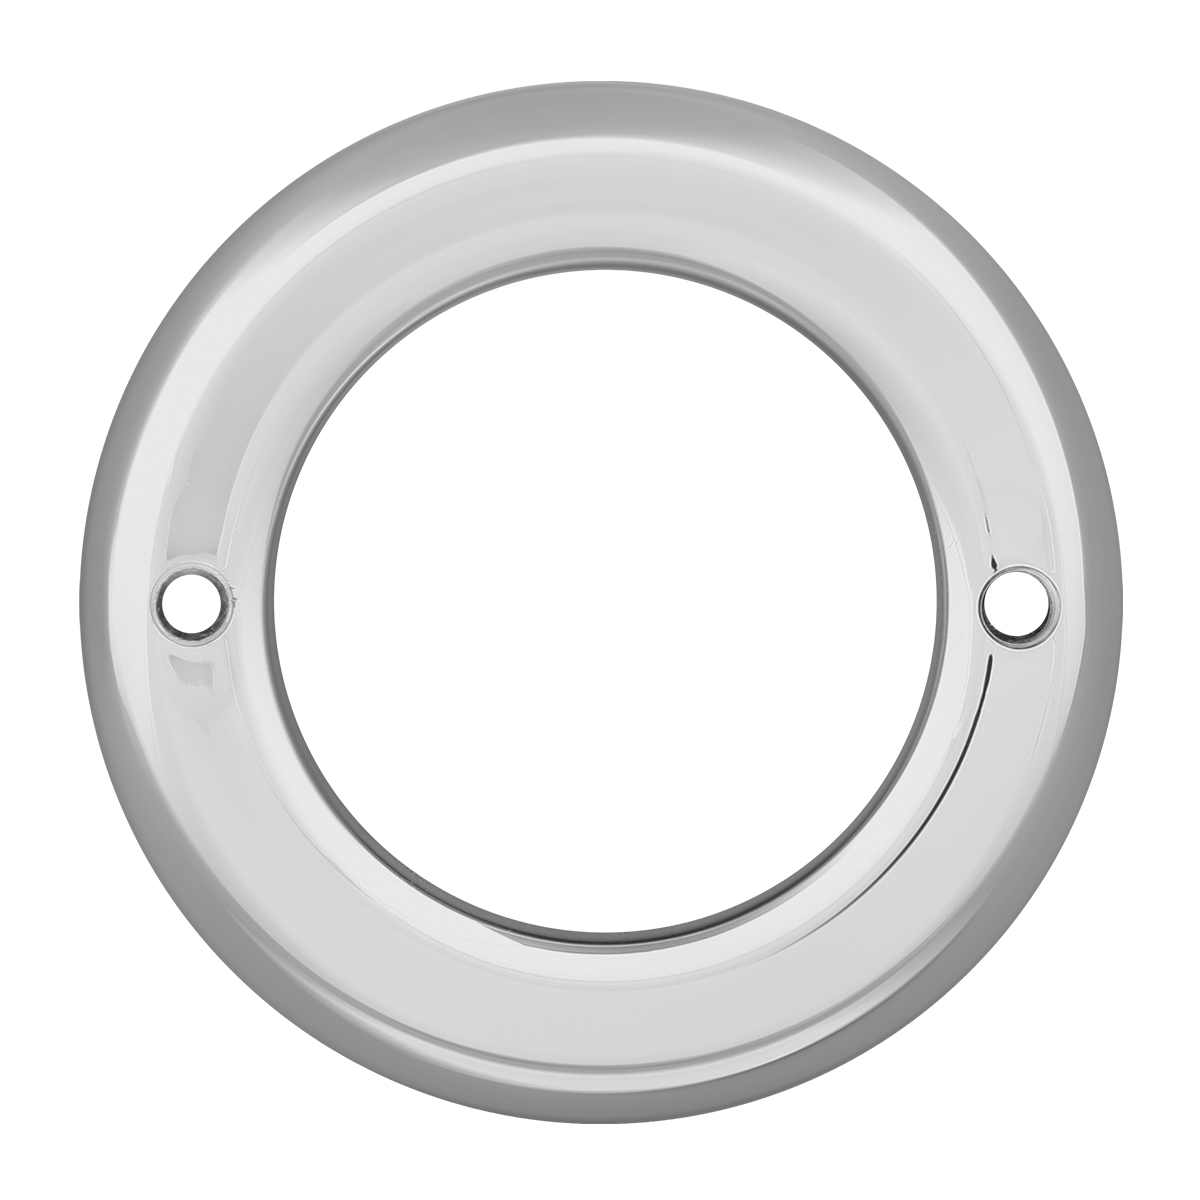 "80719 Grommet Cover w/o Visor for 2.5"" Round Light"